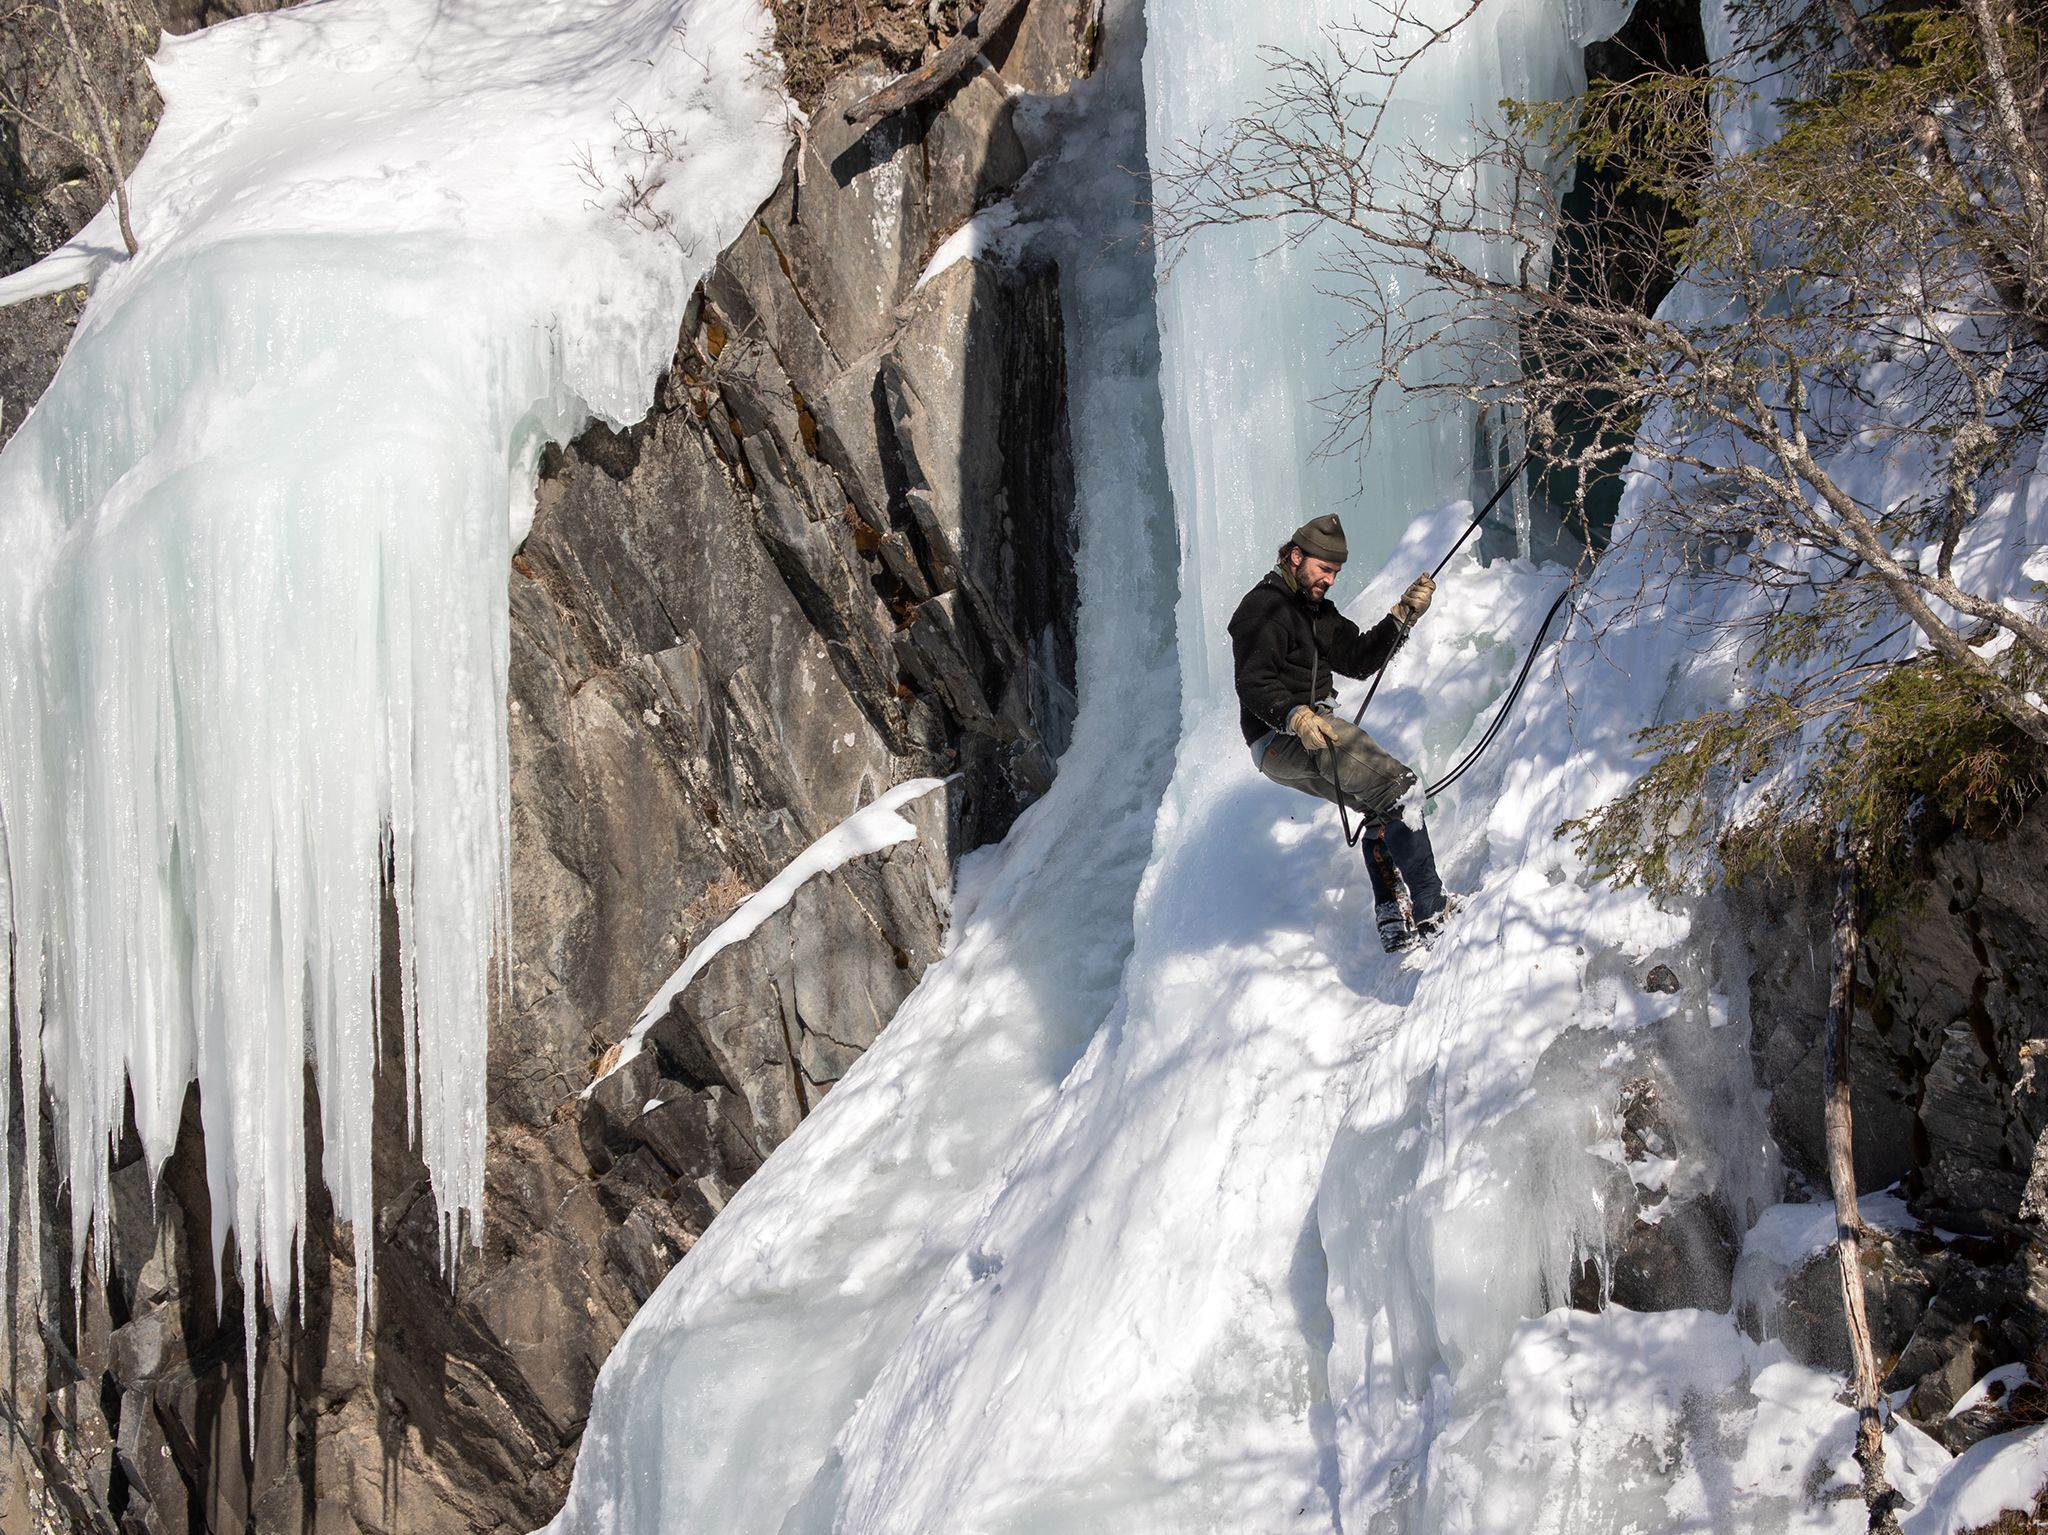 Hazen Audel abseils down an ice cliff in Norway.  This image is from Ultimate Survival WWII. [Photo of the day - November 2019]